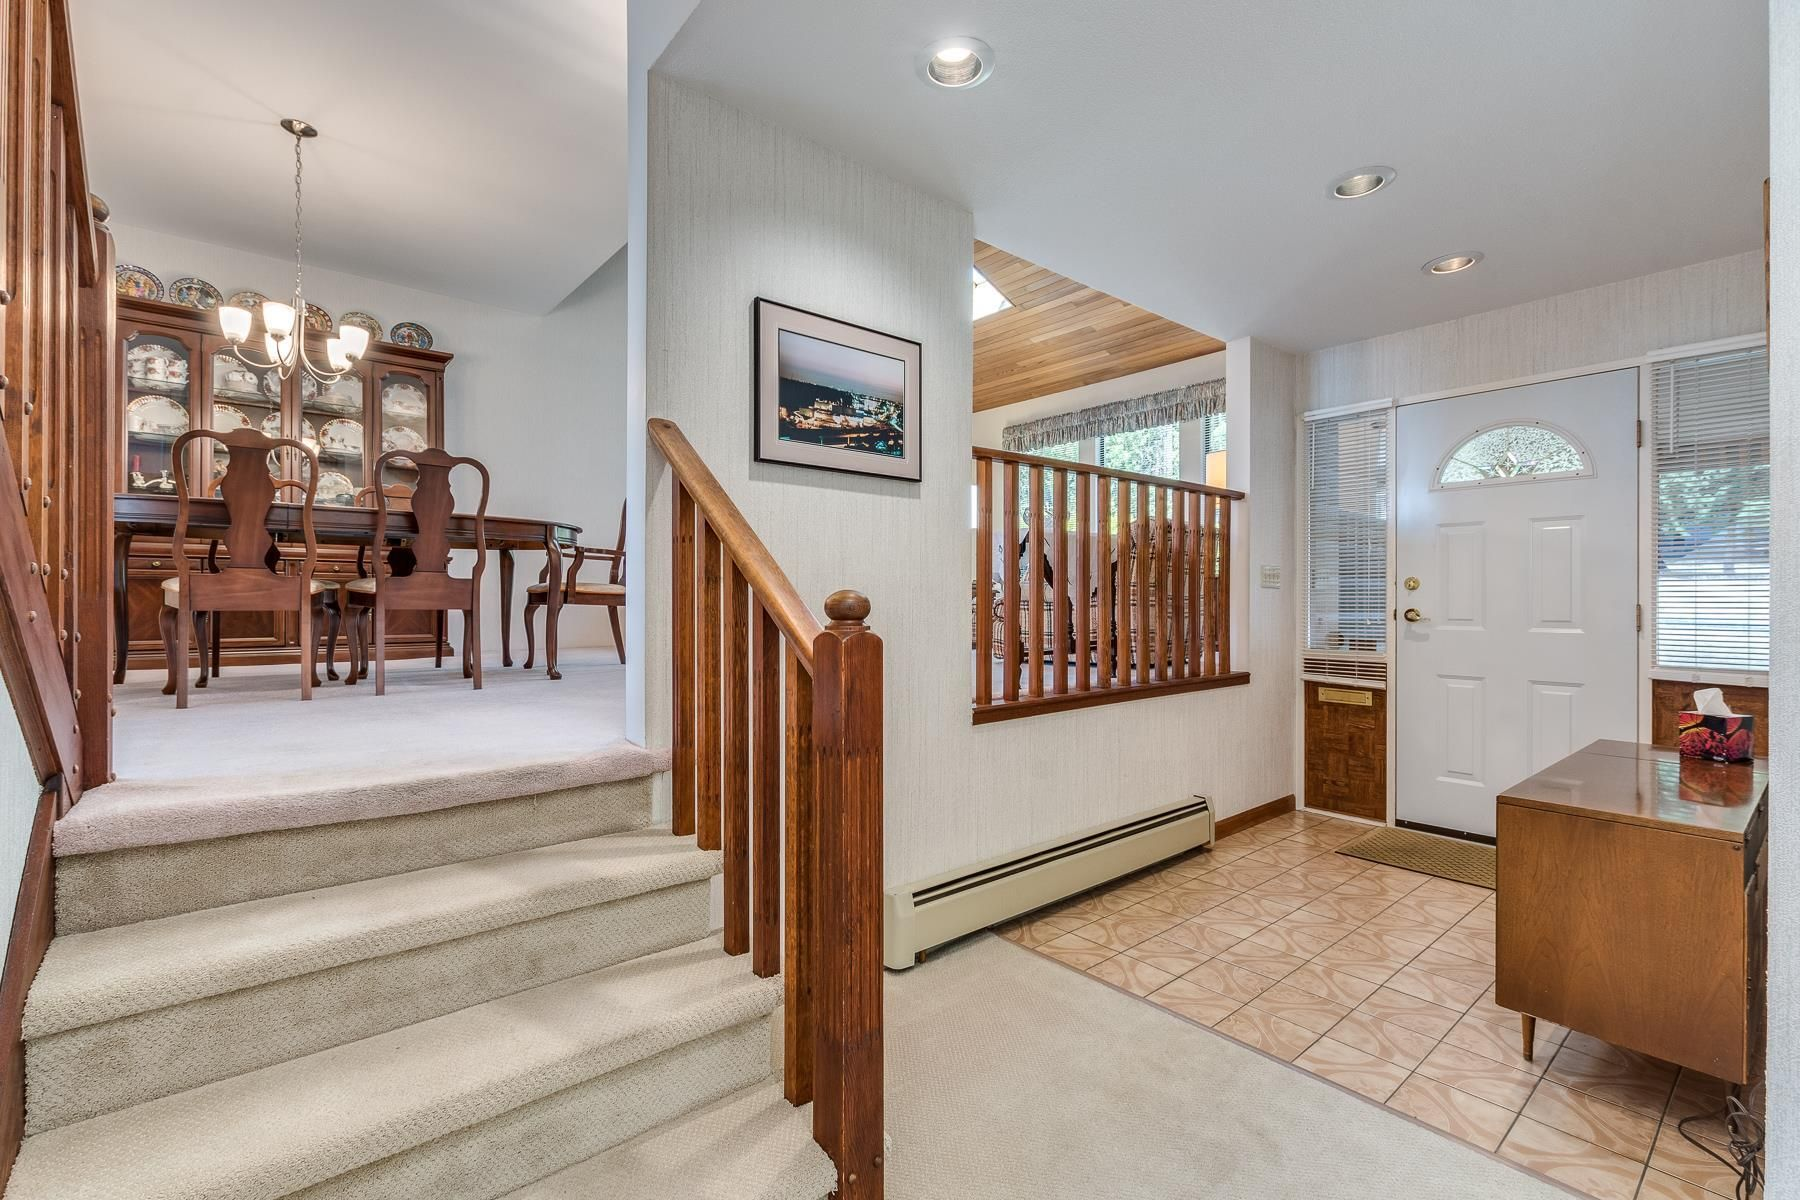 """Photo 4: Photos: 378 BALFOUR Drive in Coquitlam: Coquitlam East House for sale in """"DARTMOOR HEIGHTS"""" : MLS®# R2600428"""